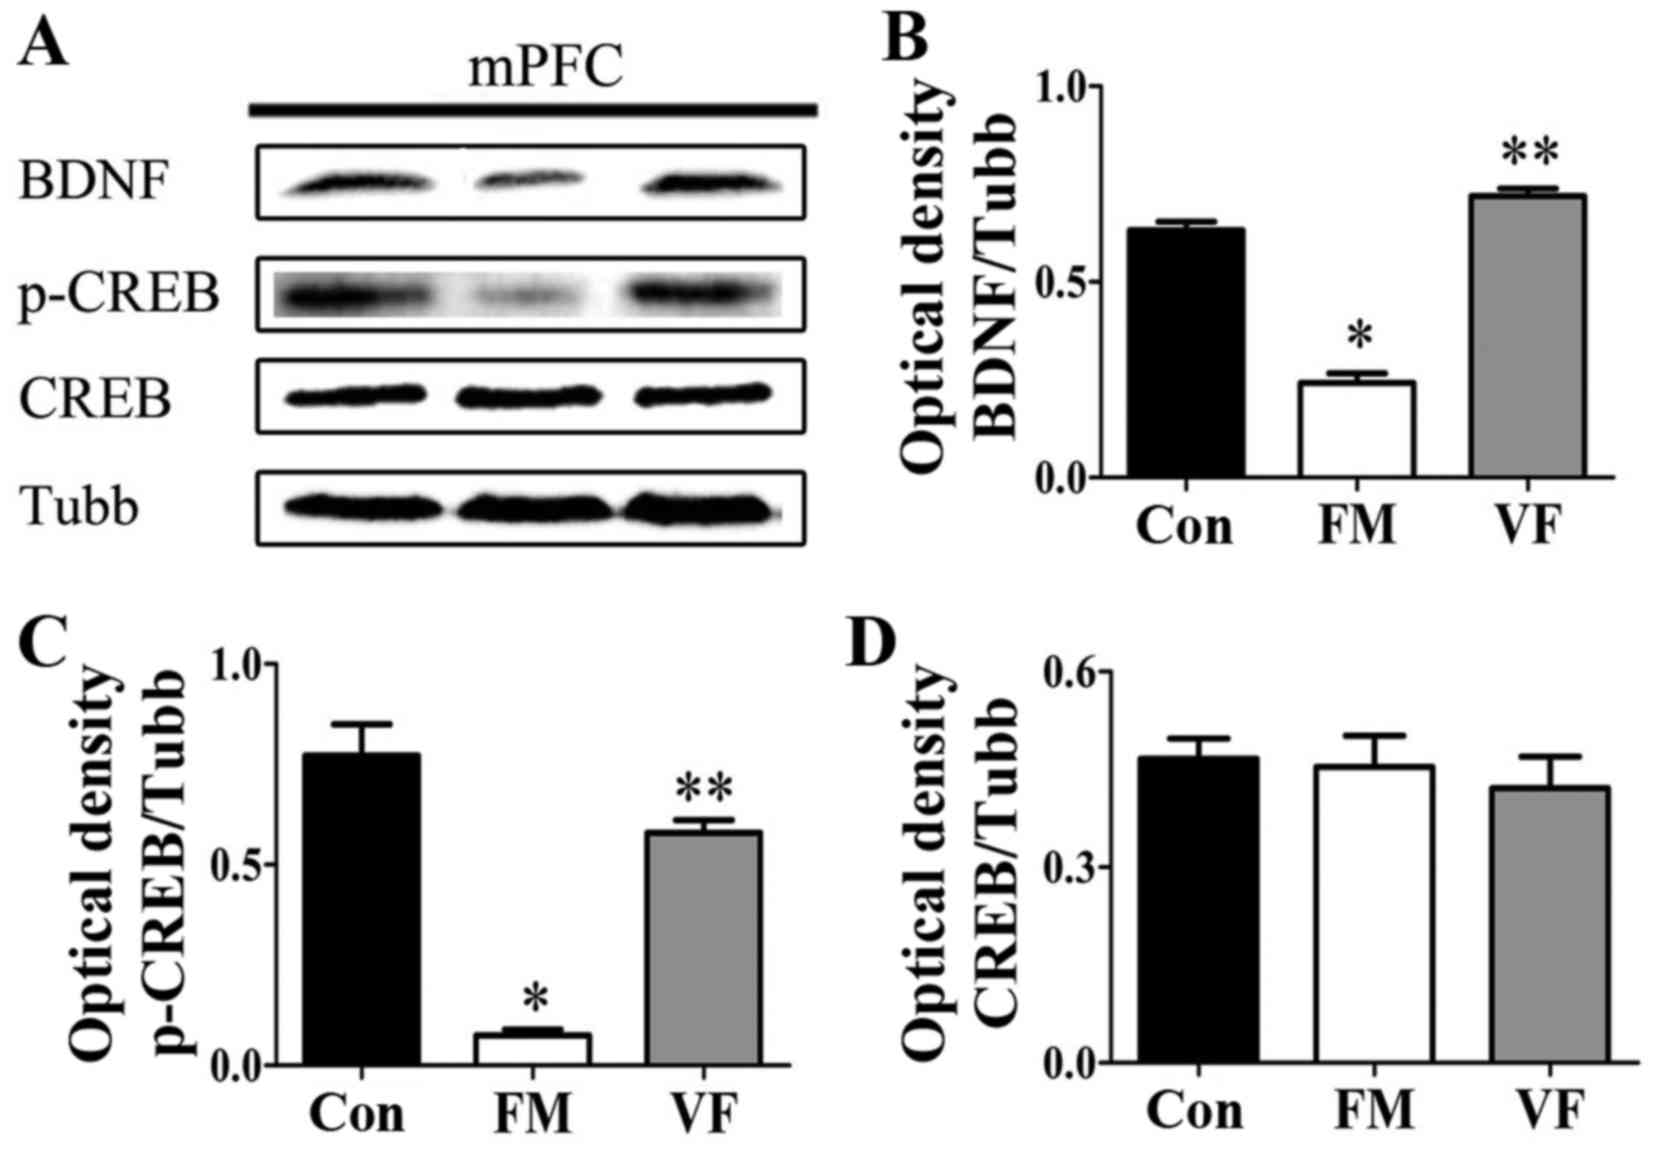 hight resolution of figure 6 effects of vf treatment on the protein expression levels of bdnf and p creb in fm mice n 5 mice group a bdnf p creb and creb levels in the